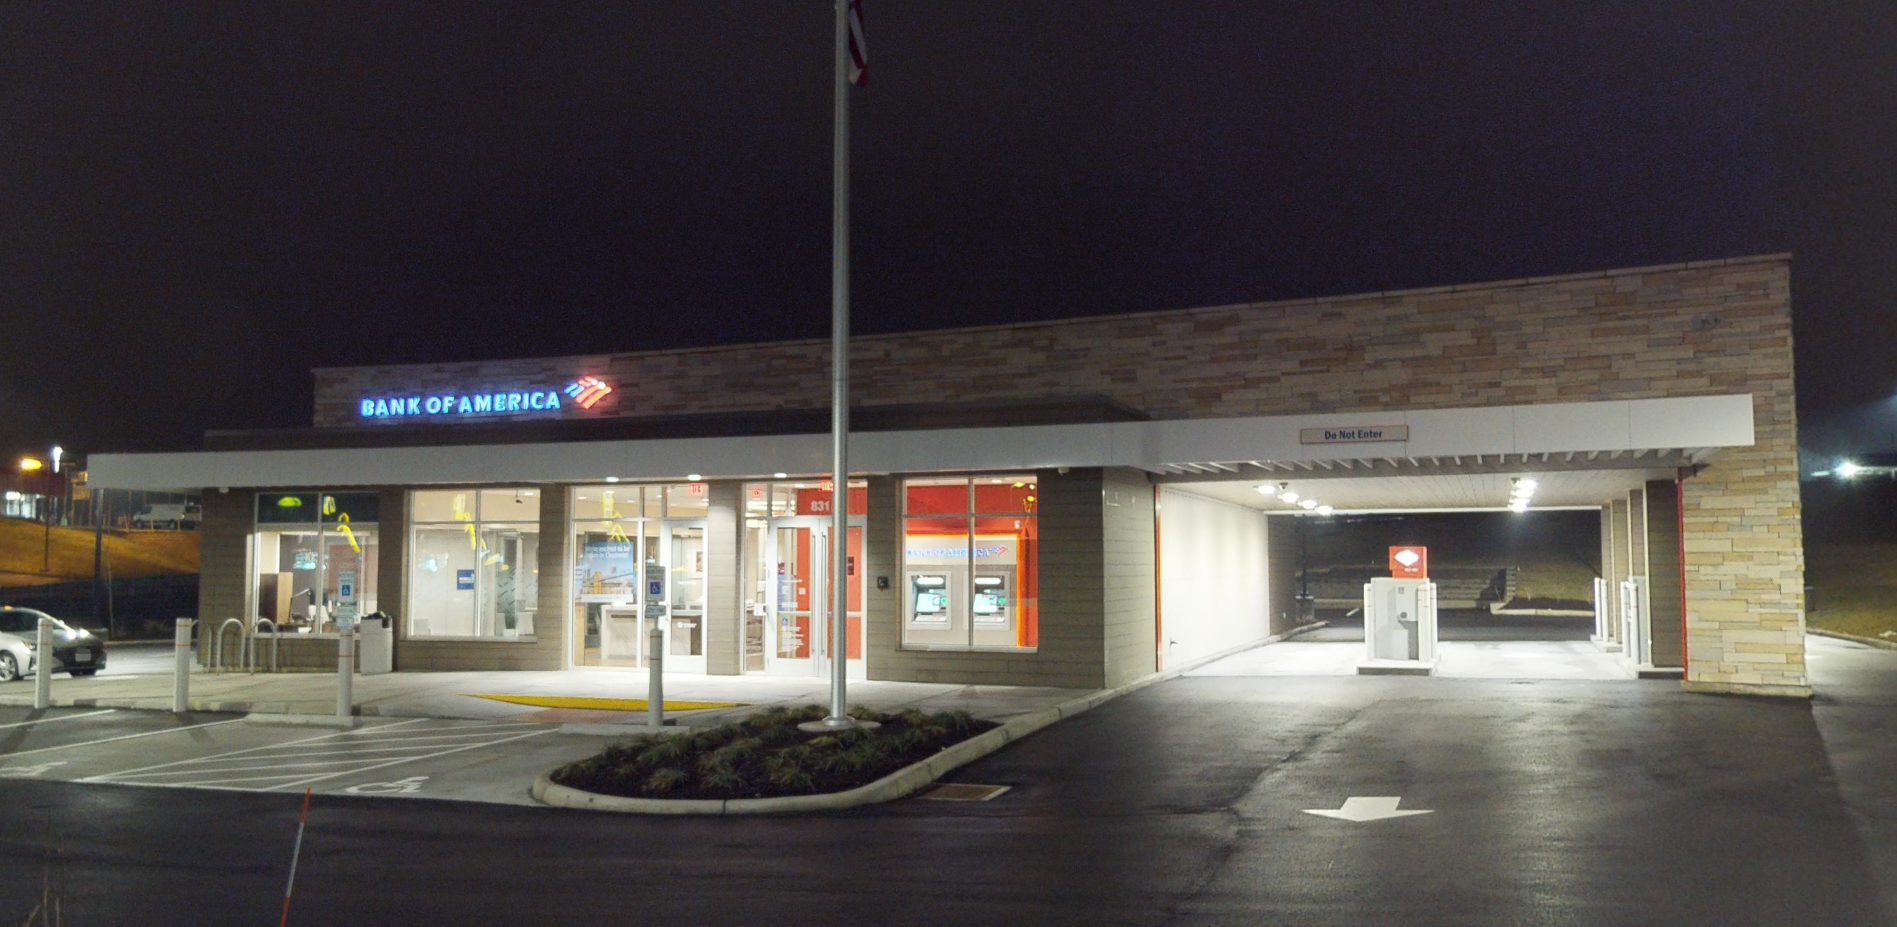 Bank of America financial center with drive-thru ATM | 831 Eastgate South Dr, Cincinnati, OH 45245